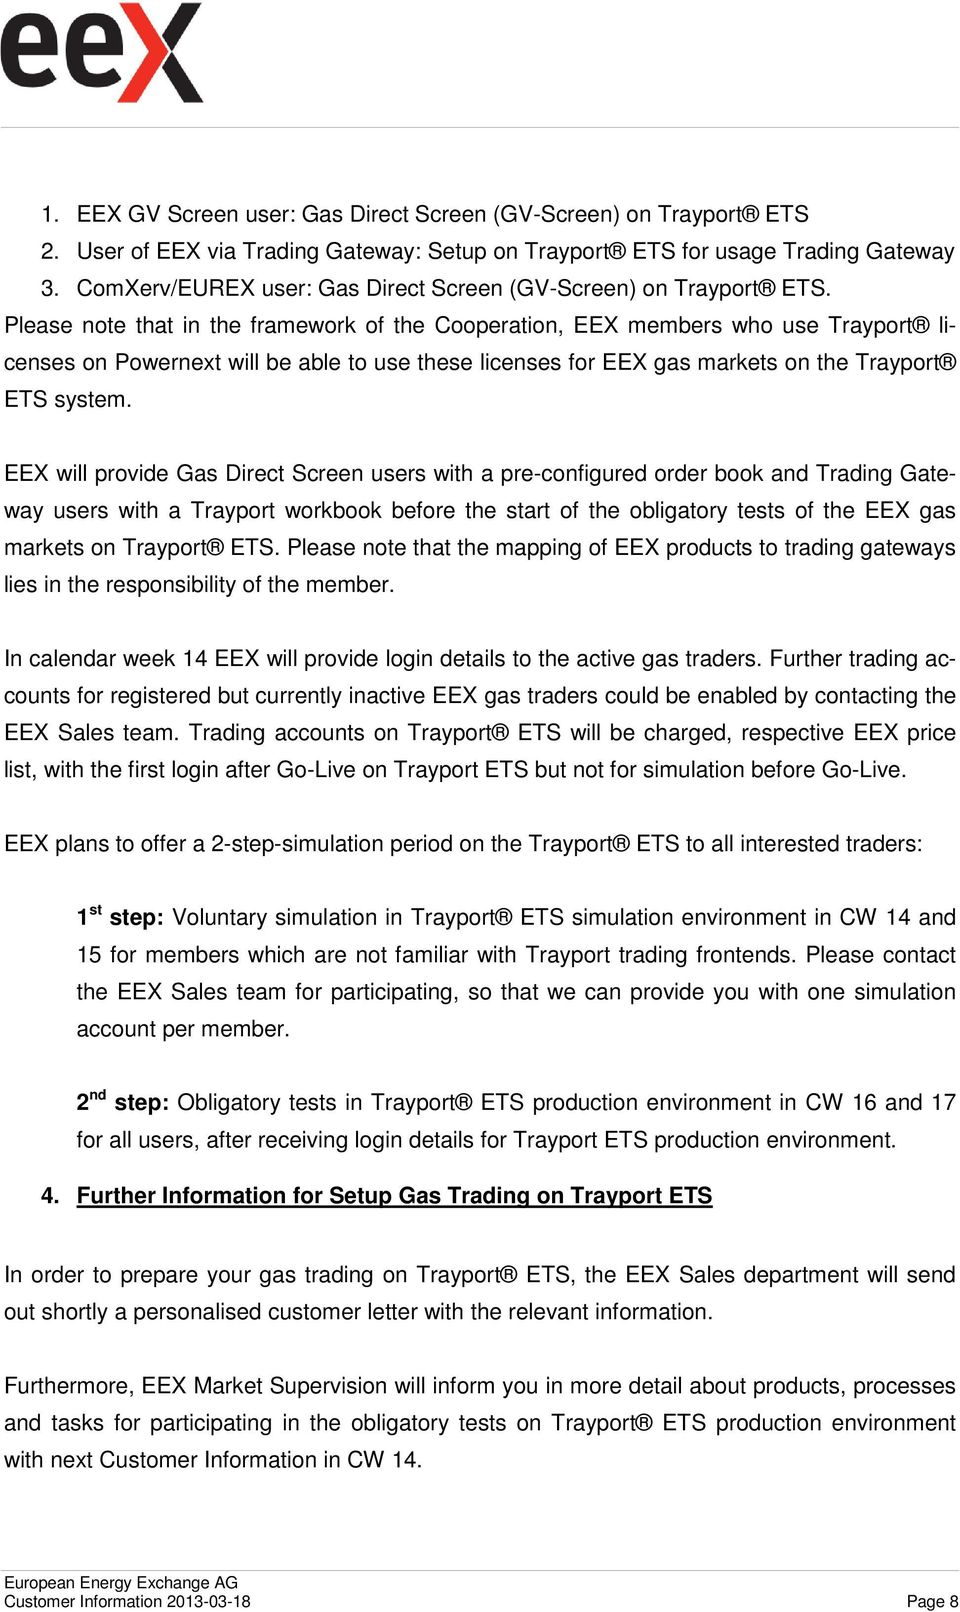 Please note that in the framework of the Cooperation, EEX members who use Trayport licenses on Powernext will be able to use these licenses for EEX gas markets on the Trayport ETS system.